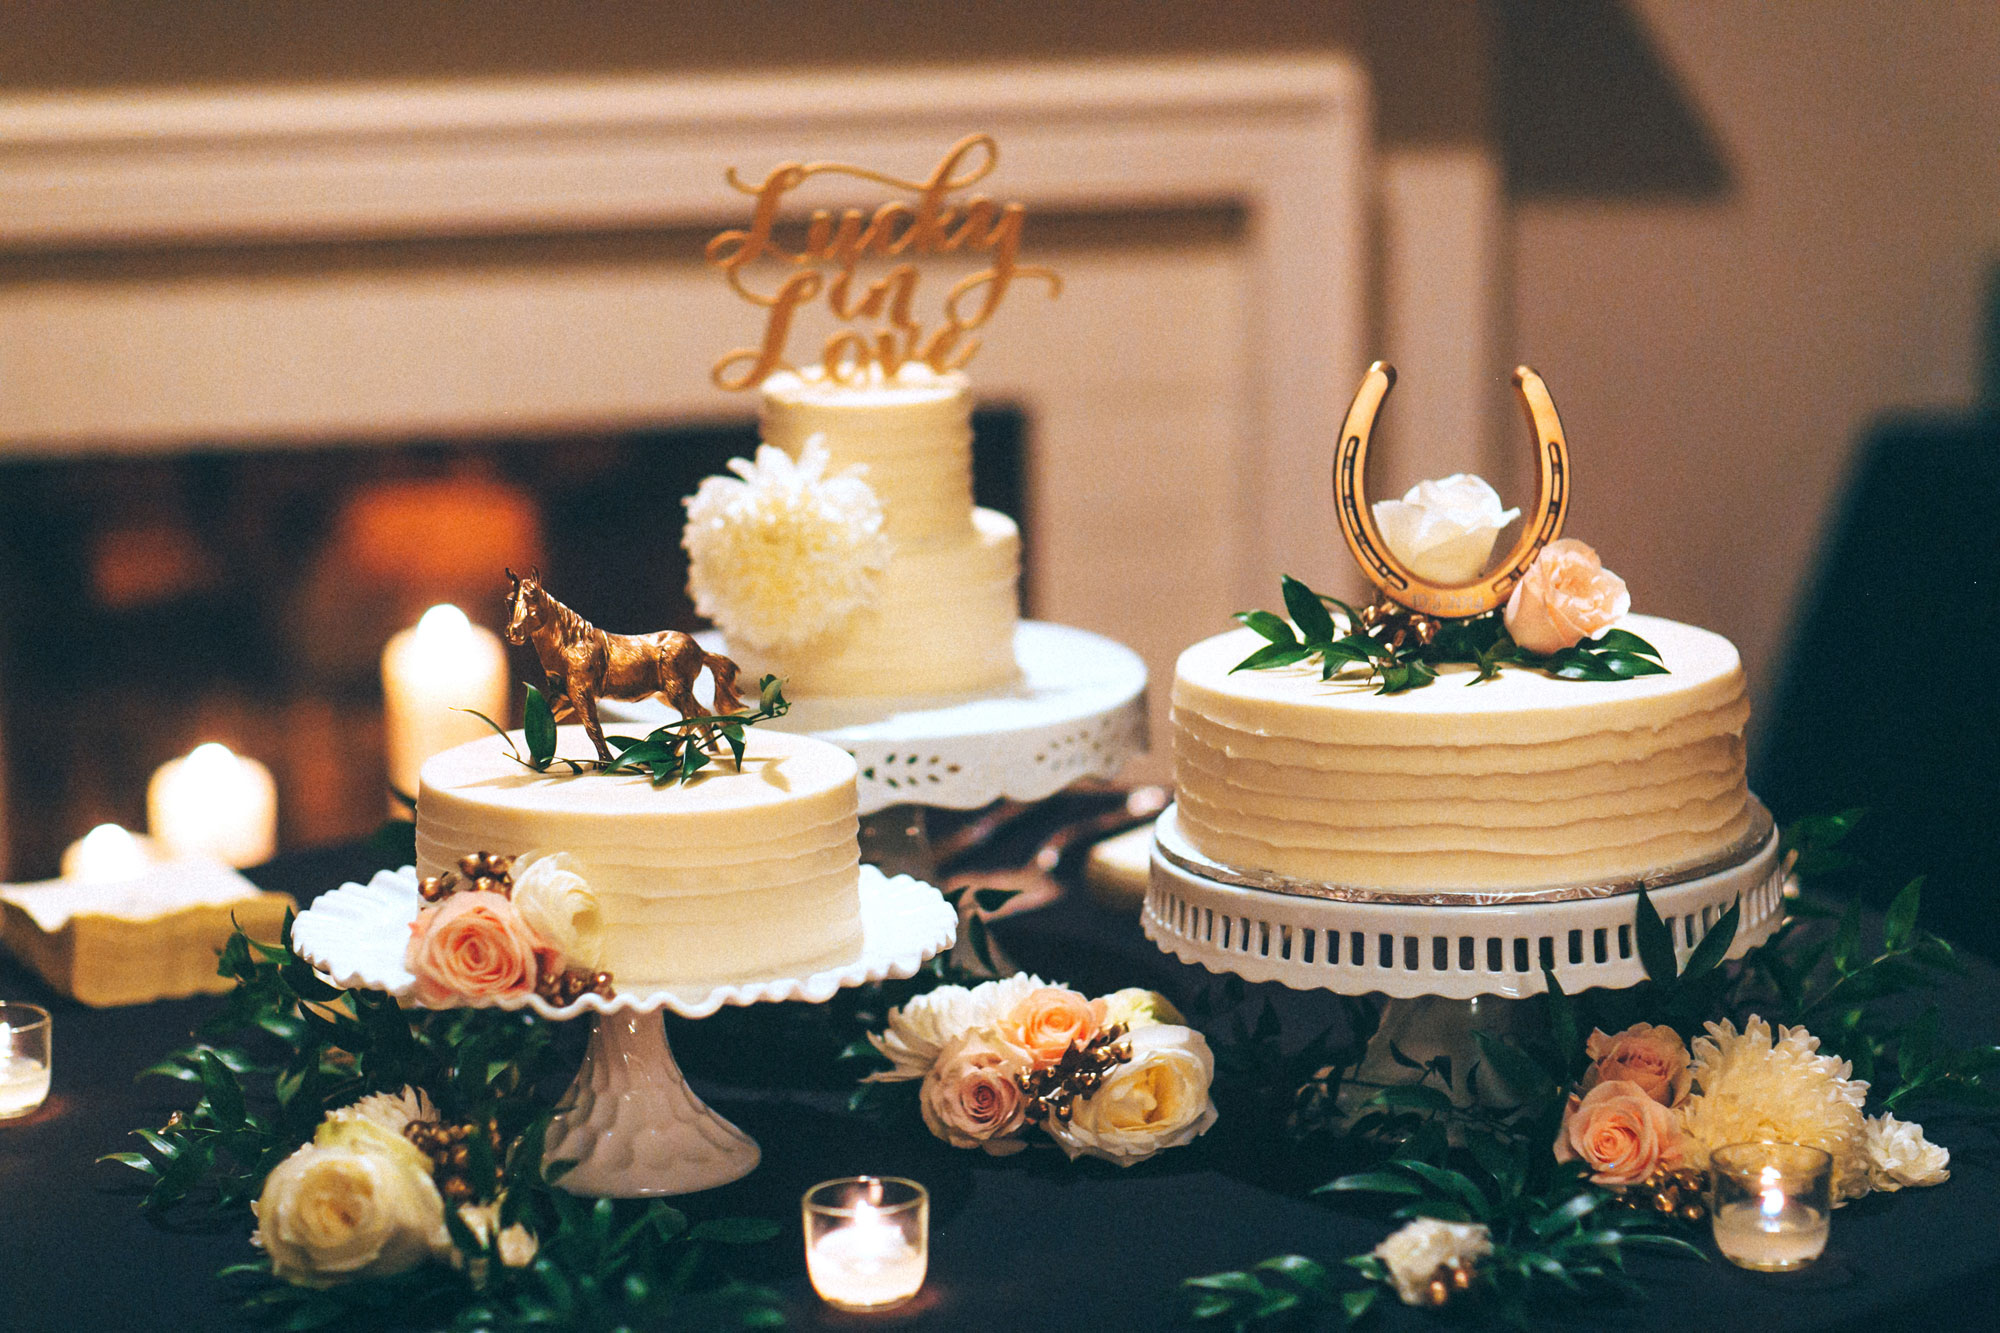 Me & Mr. Jones Wedding, Equestrian Inspired Decor, Three Separate Cakes, Lucky In Love Cake Topper, Gold Horse Cake Topper, Horseshoe with Wedding Date Cake Topper, Funfetti Wedding Cake